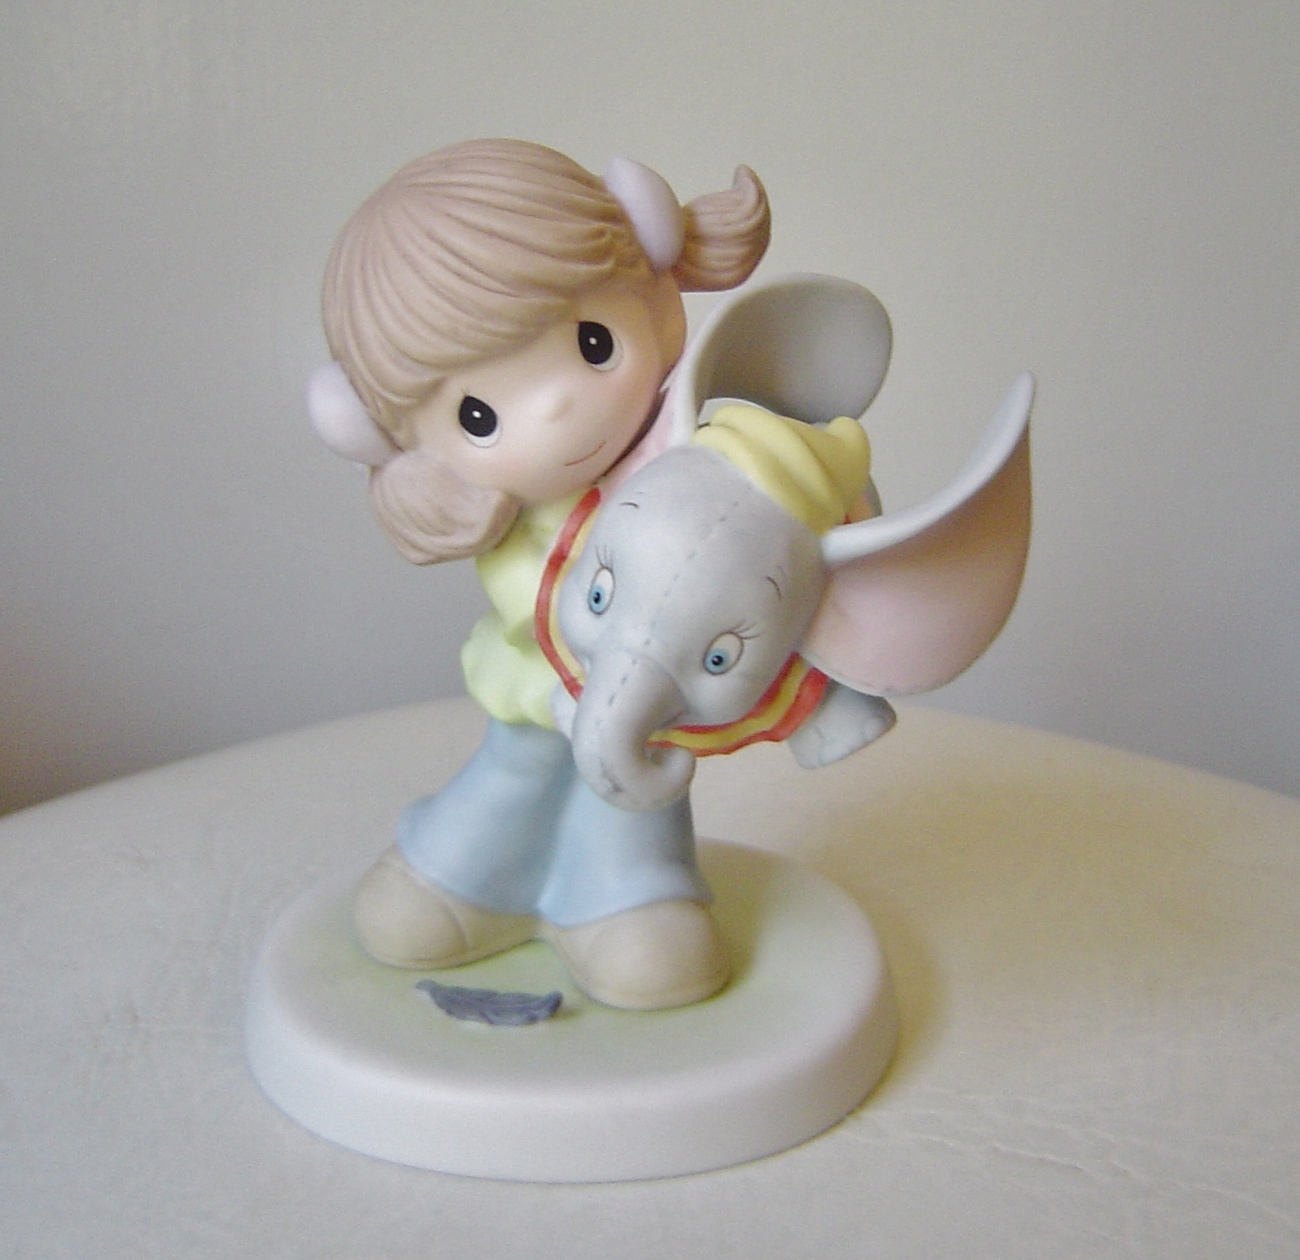 Precious Moments Now You Can Fly Disney Dumbo Figurine